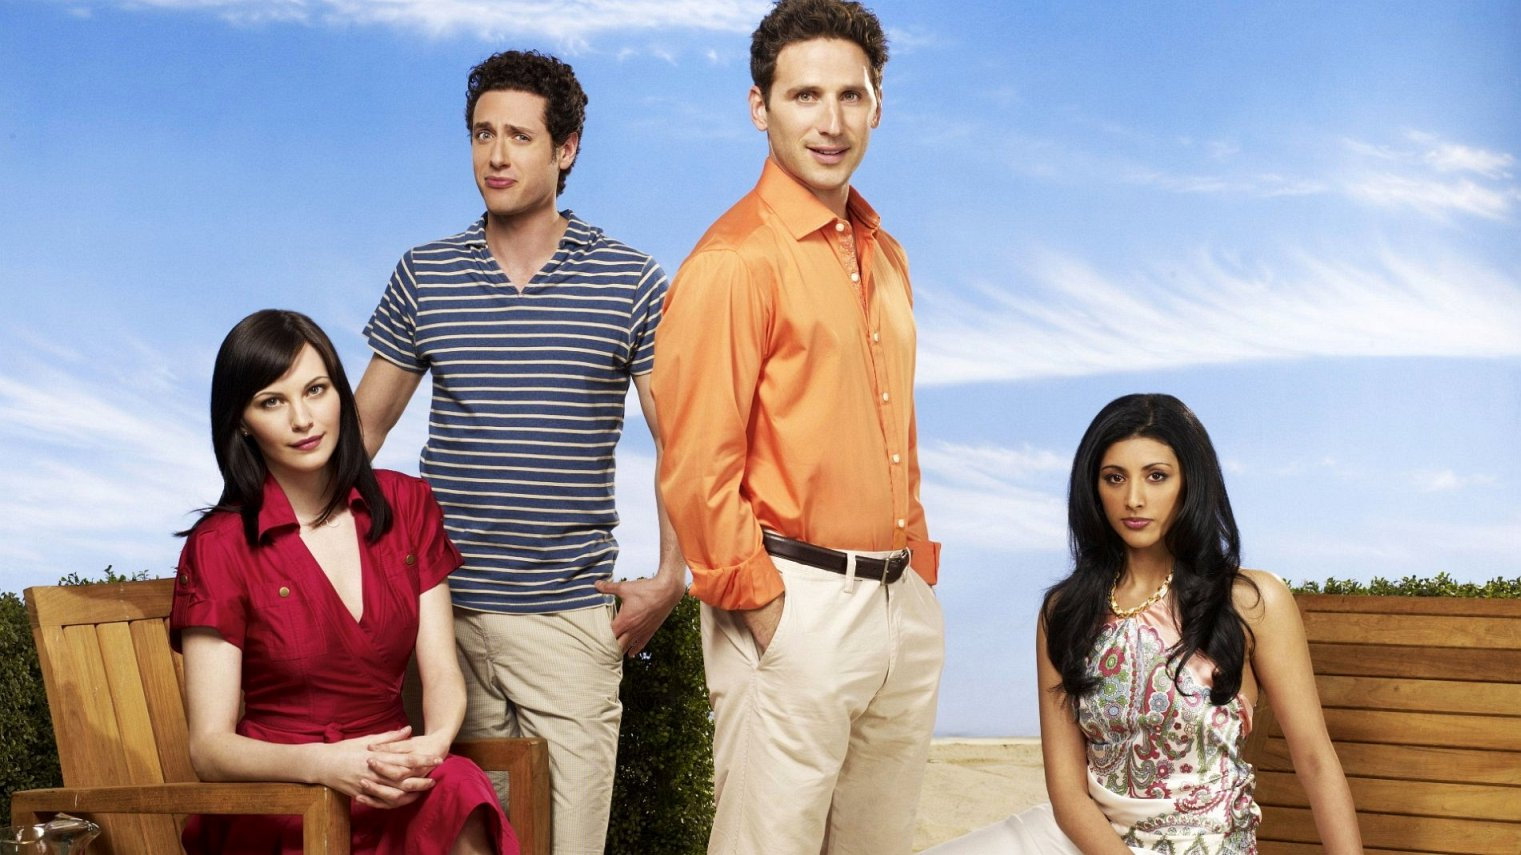 when does Royal Pains return